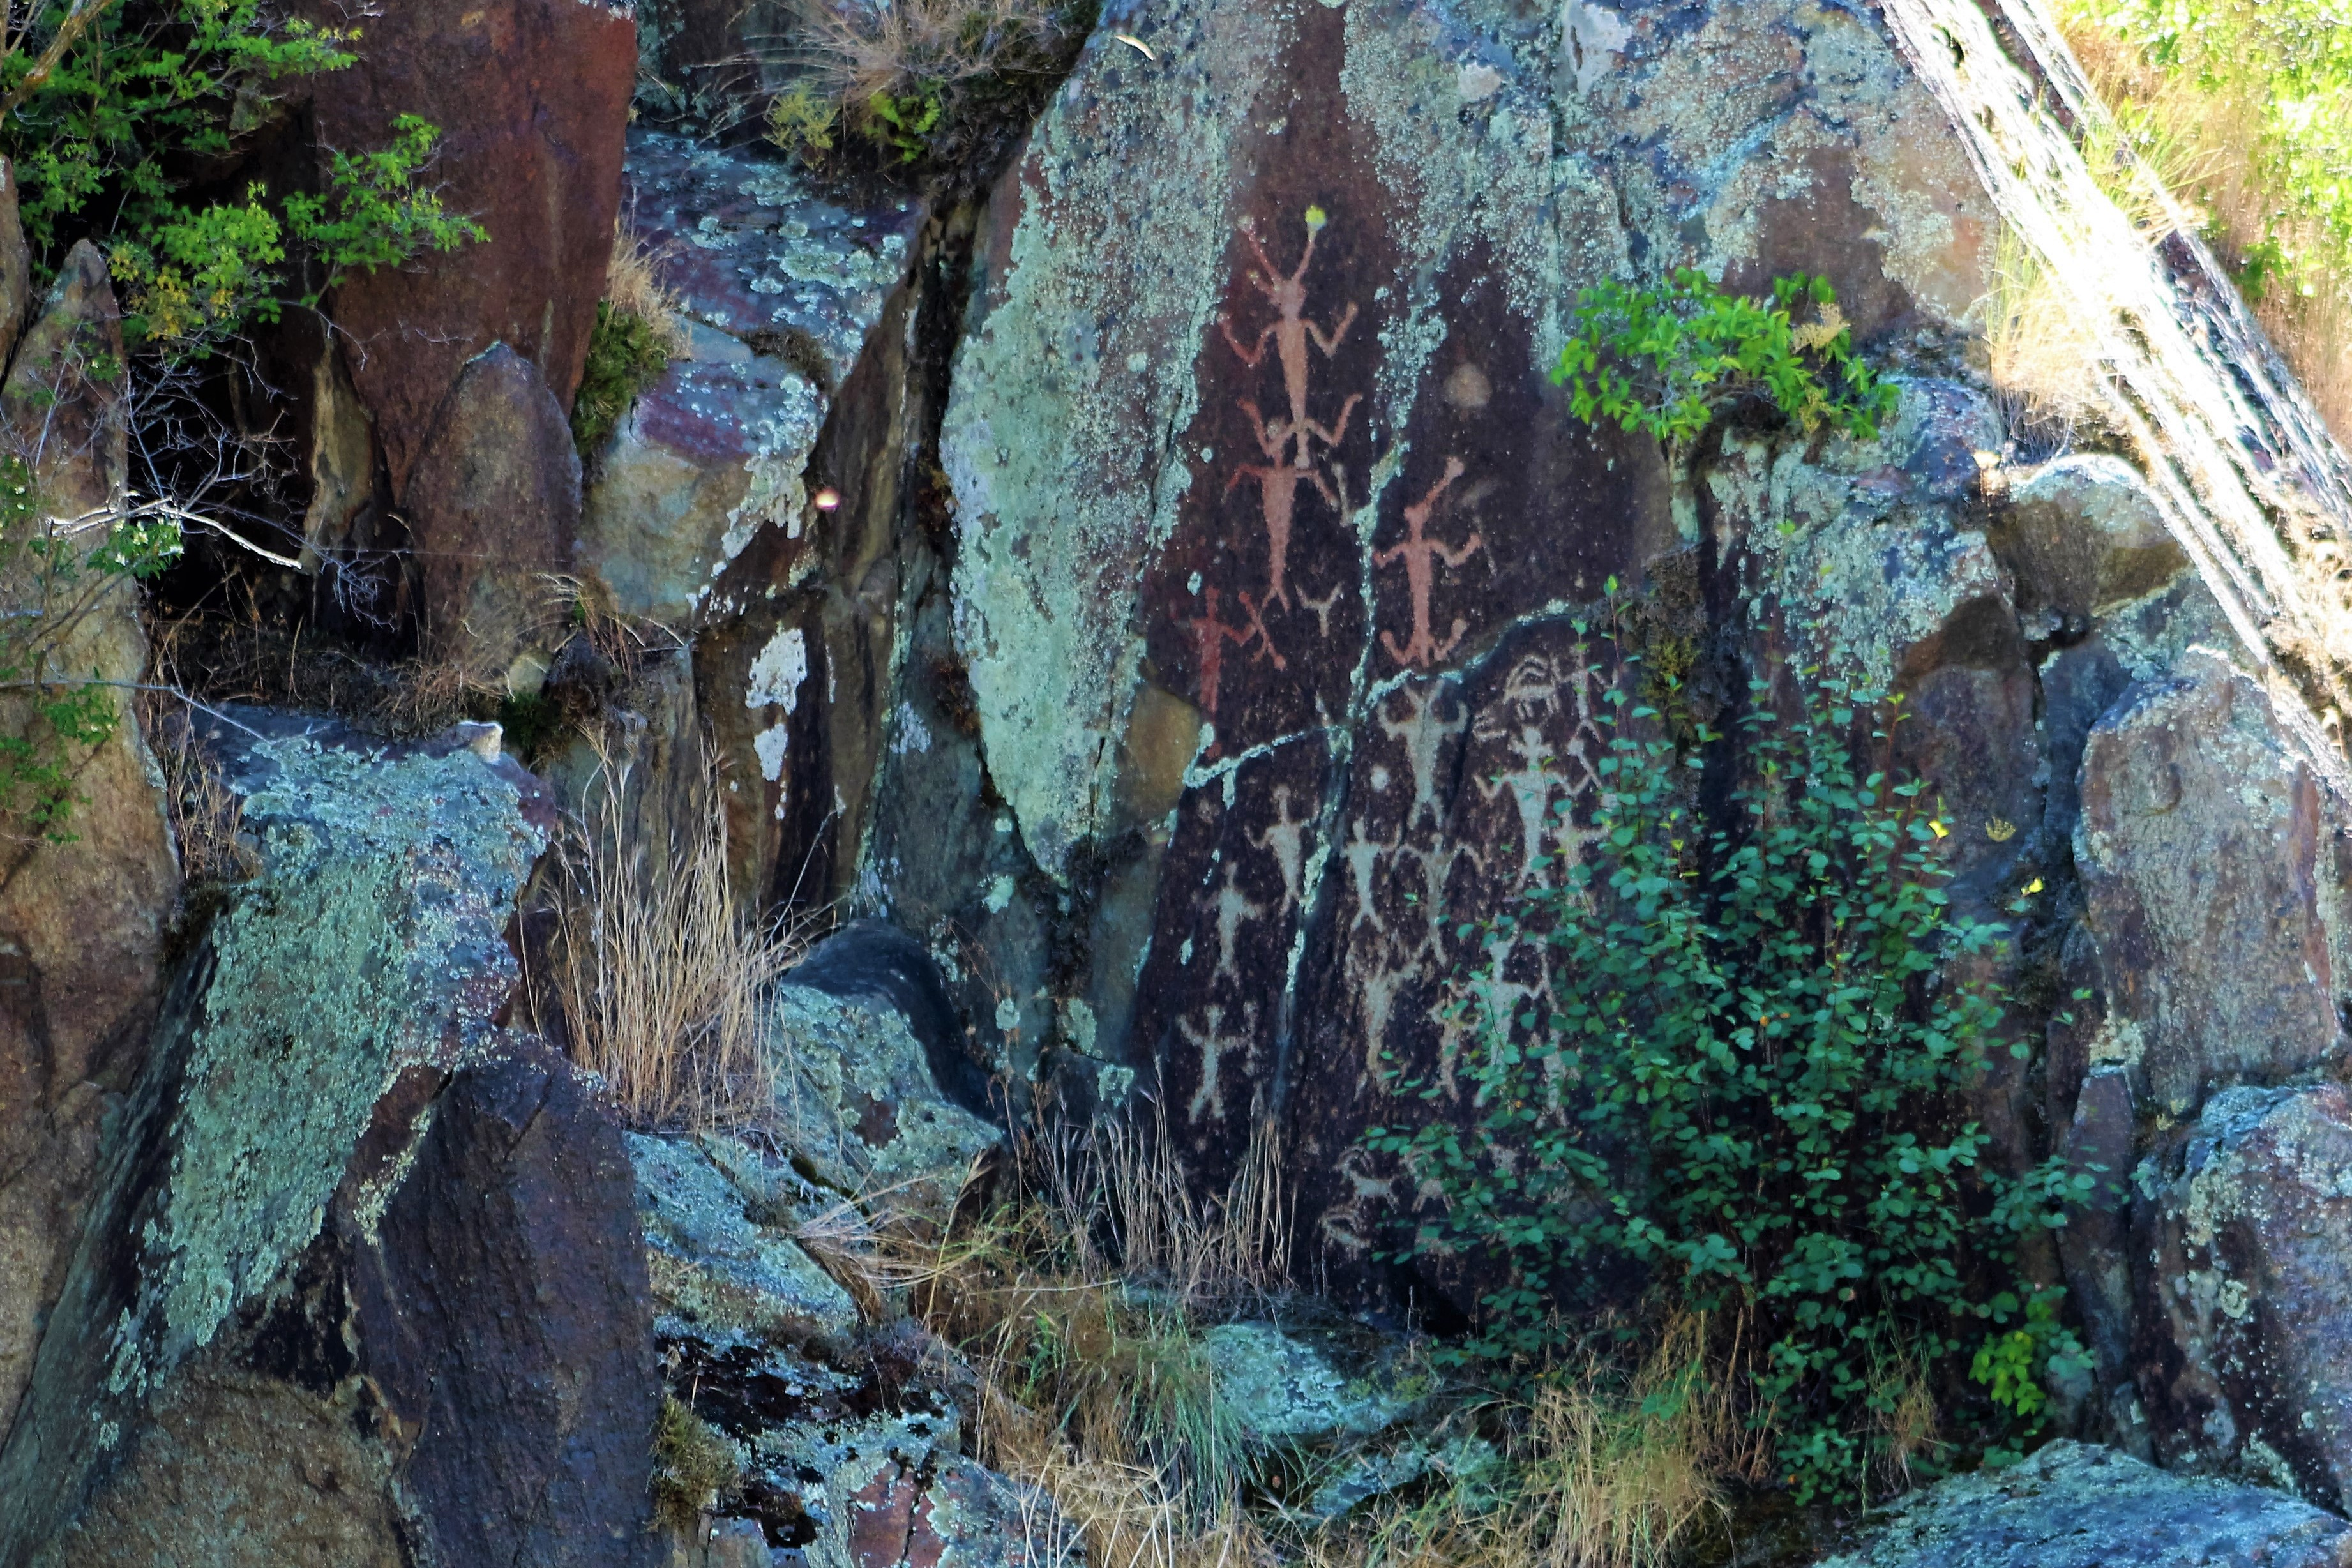 A petroglyph on a rock depicts several horned figures clustered together with arms raised.